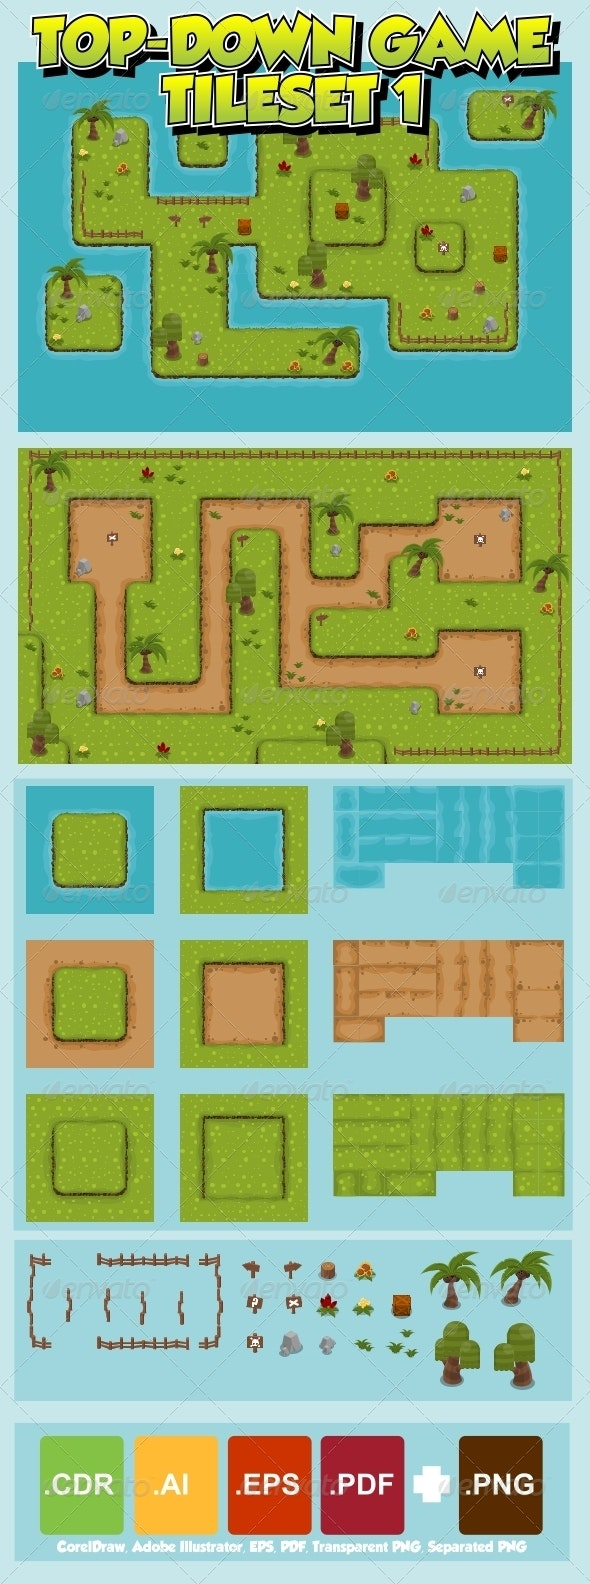 Top-Down Game Tileset 1 - Tilesets Game Assets